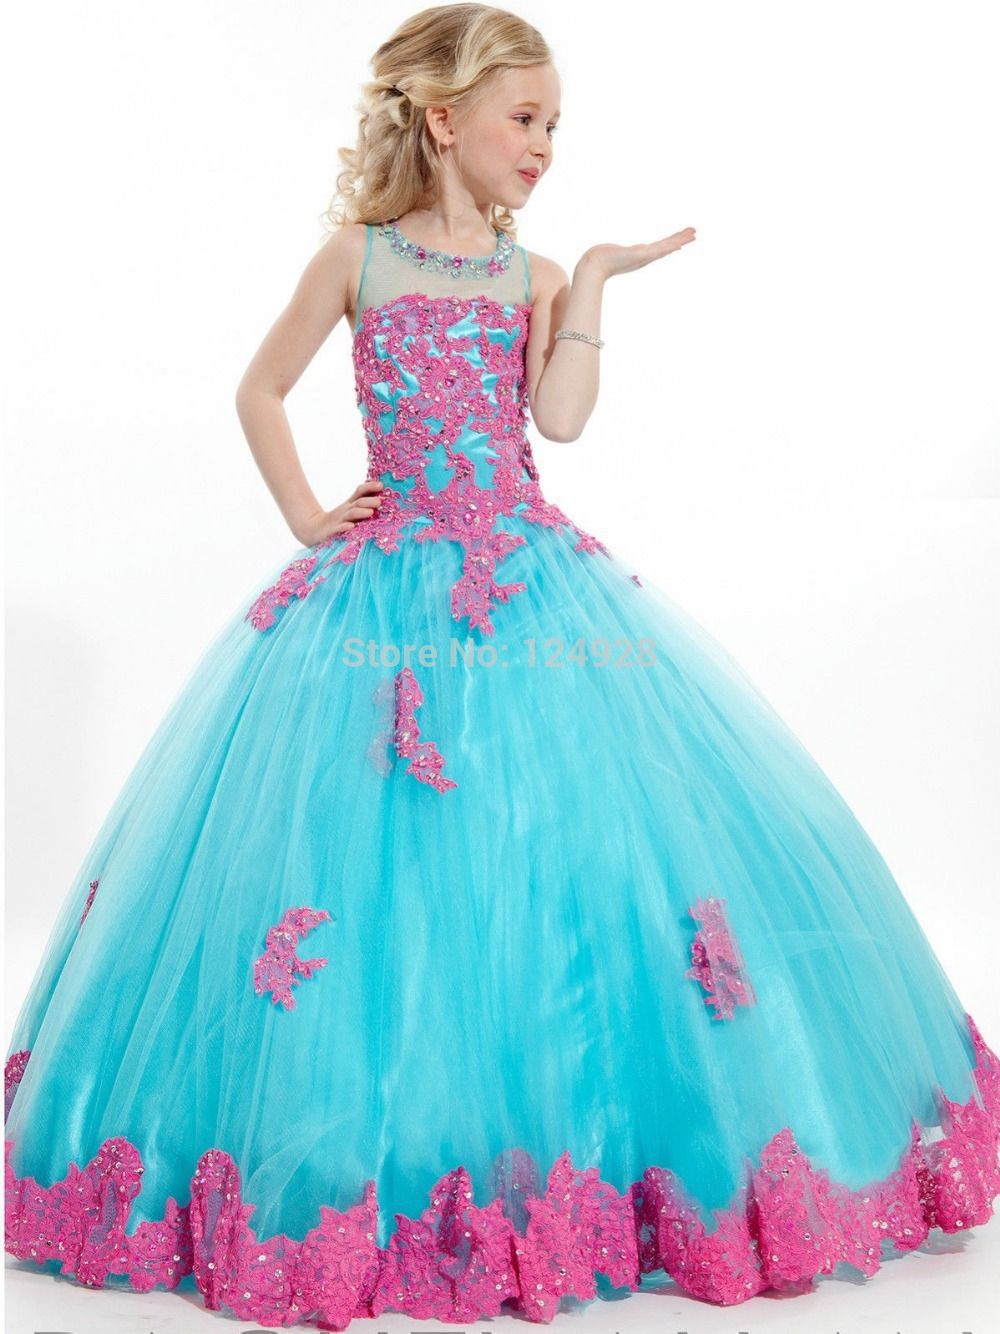 2015 Girls Pageant Dresses Ball Gown High Collar Blue Green Red ...